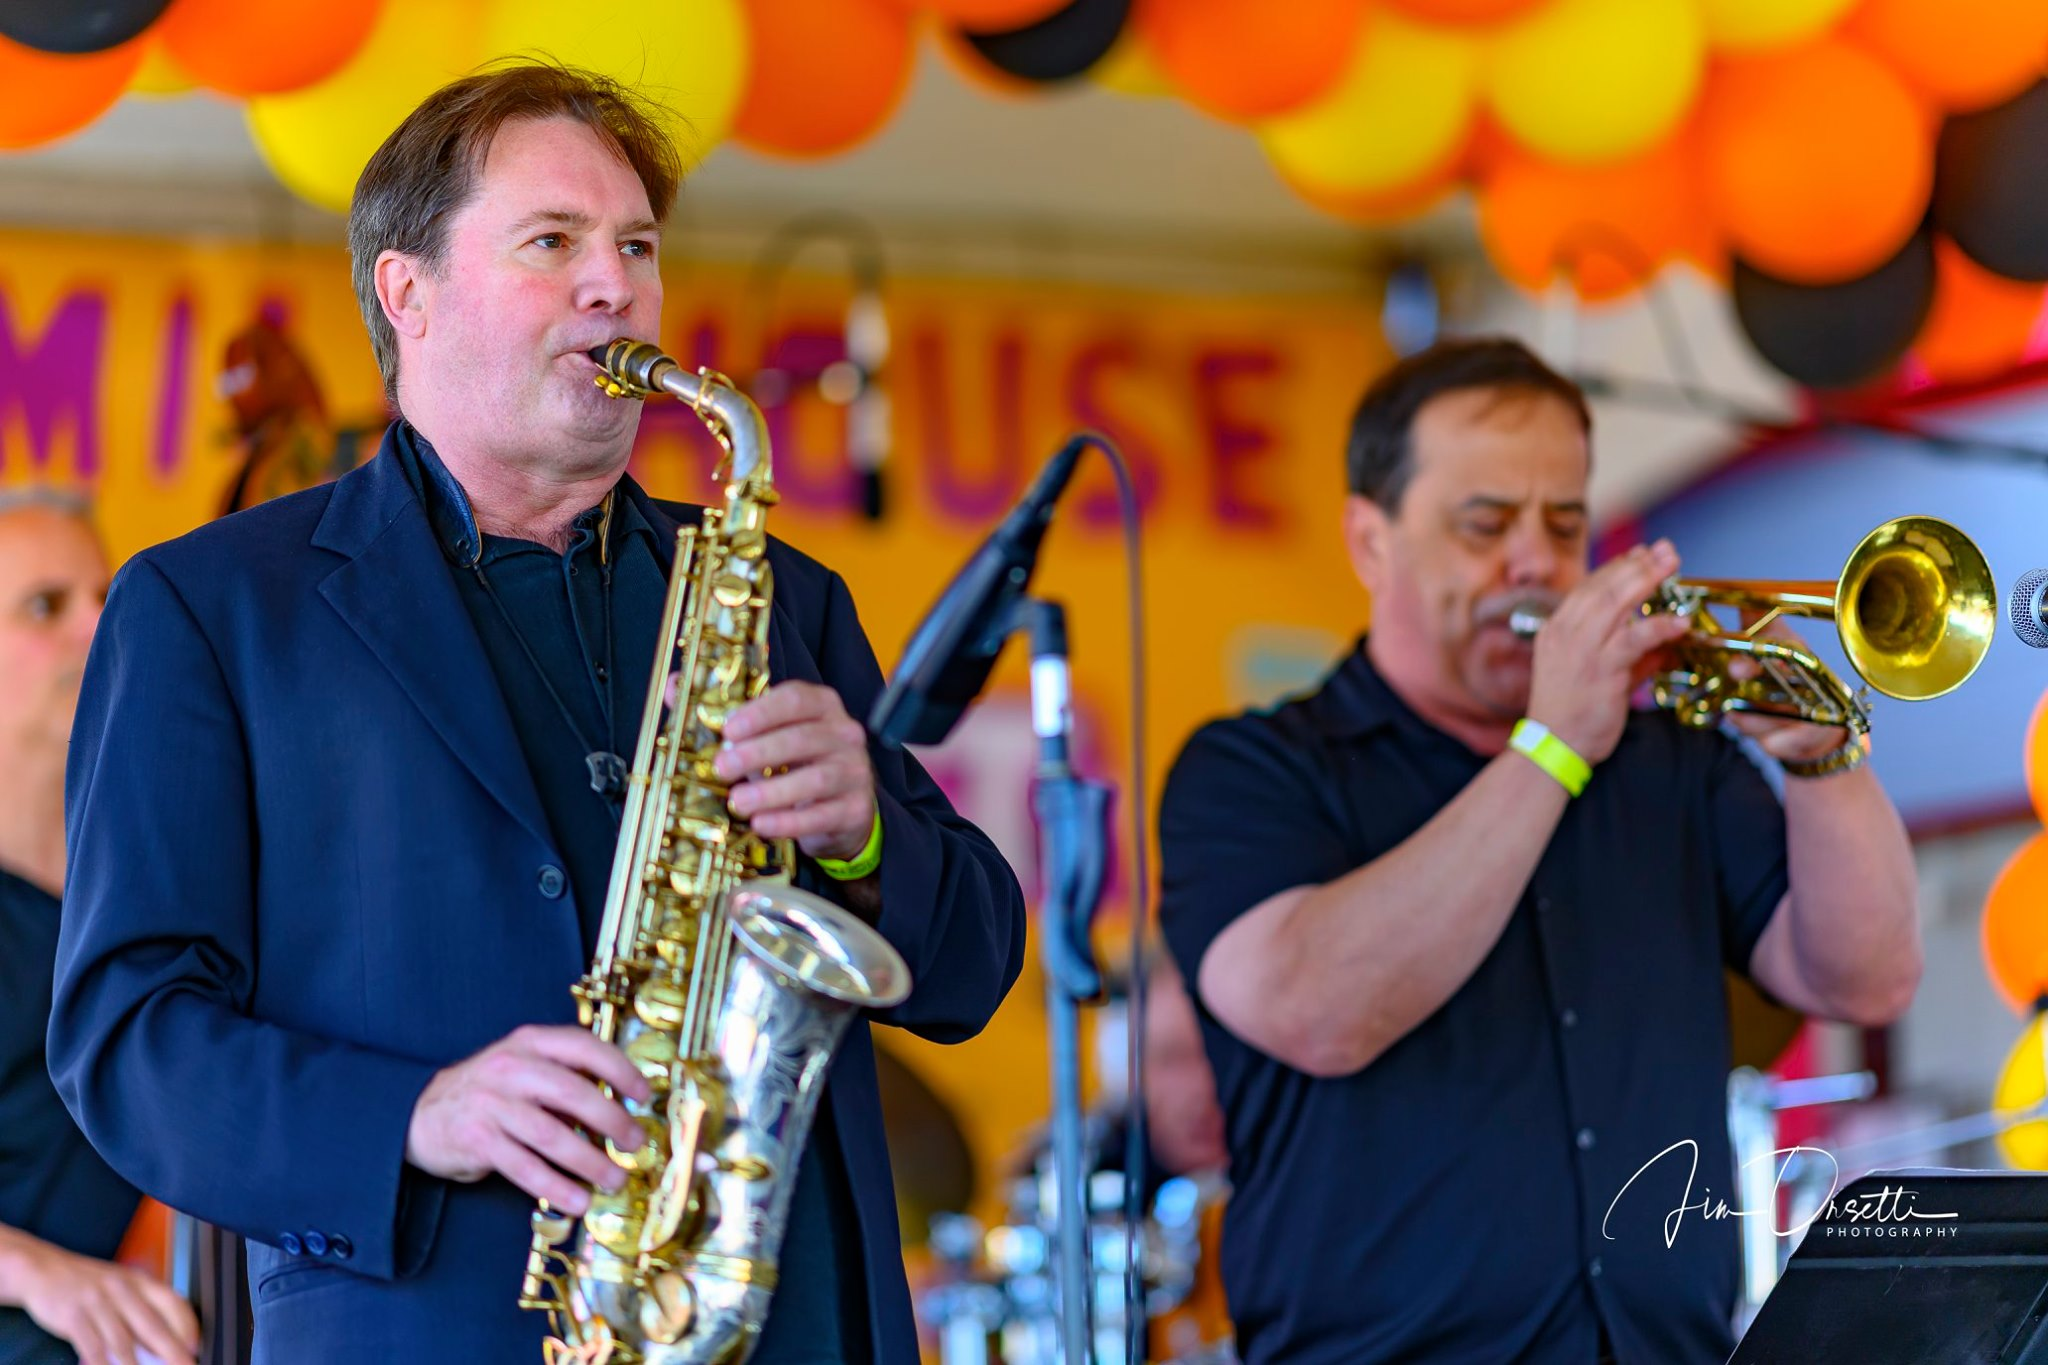 Andrew Speight & Modesto Briseno at the 2nd Annual 7 Mile House Jazz Fest 2019